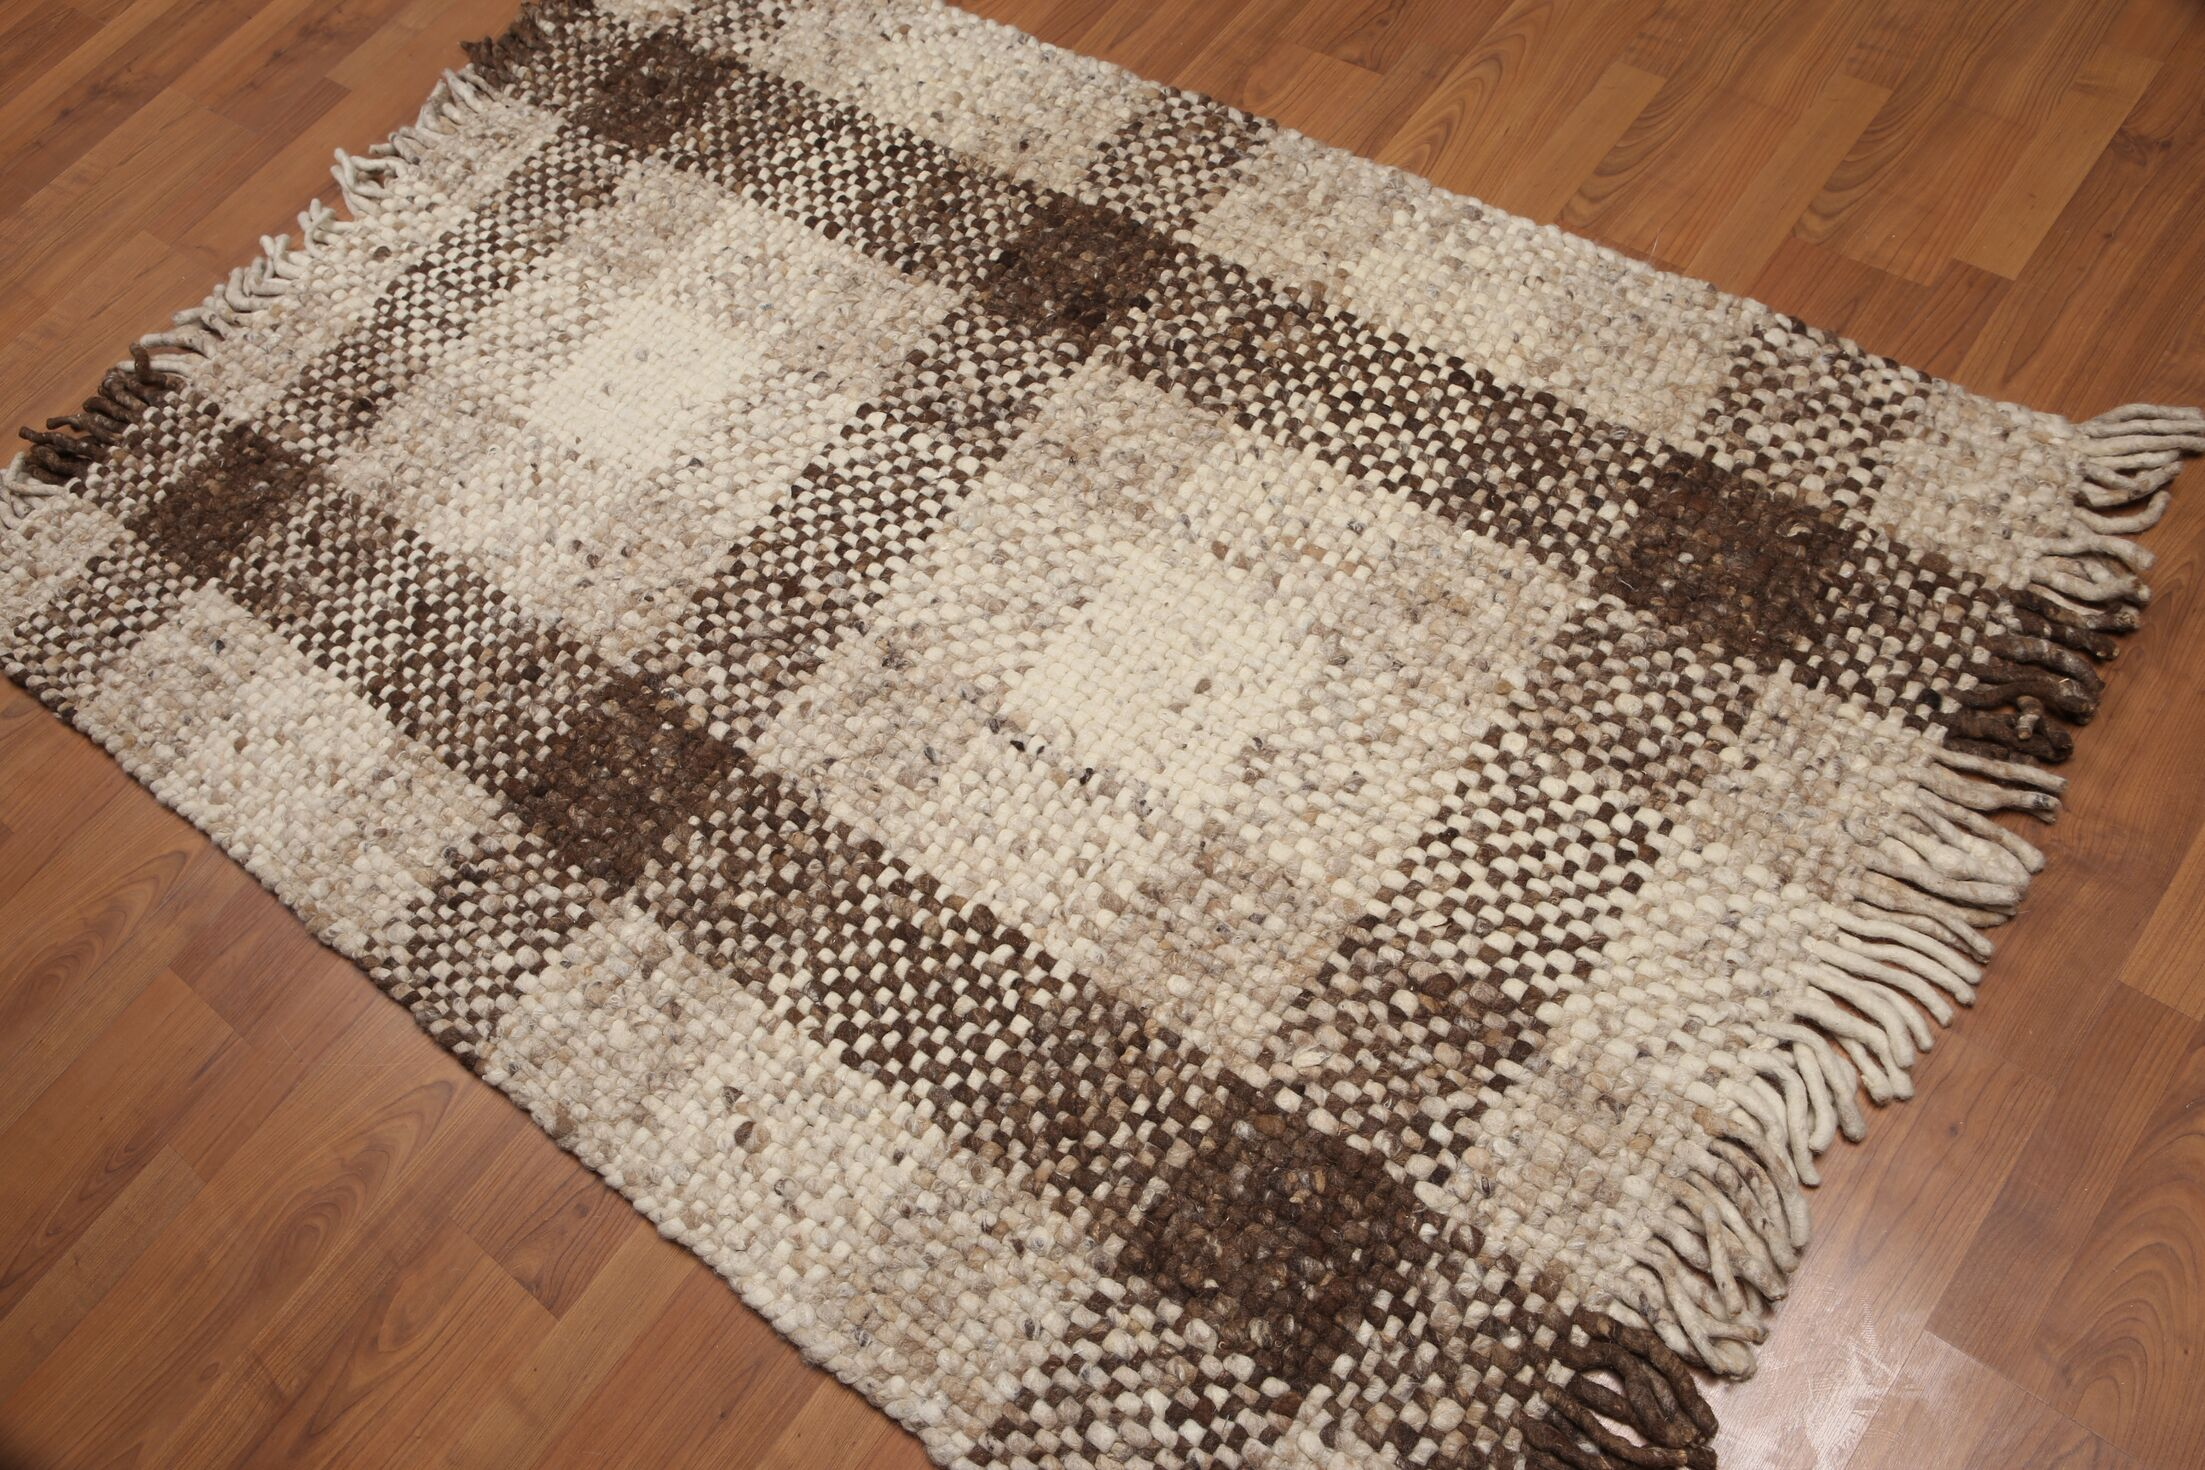 One-of-a-Kind Balis Reversible Pile Hand-Woven Beige/Brown Area Rug